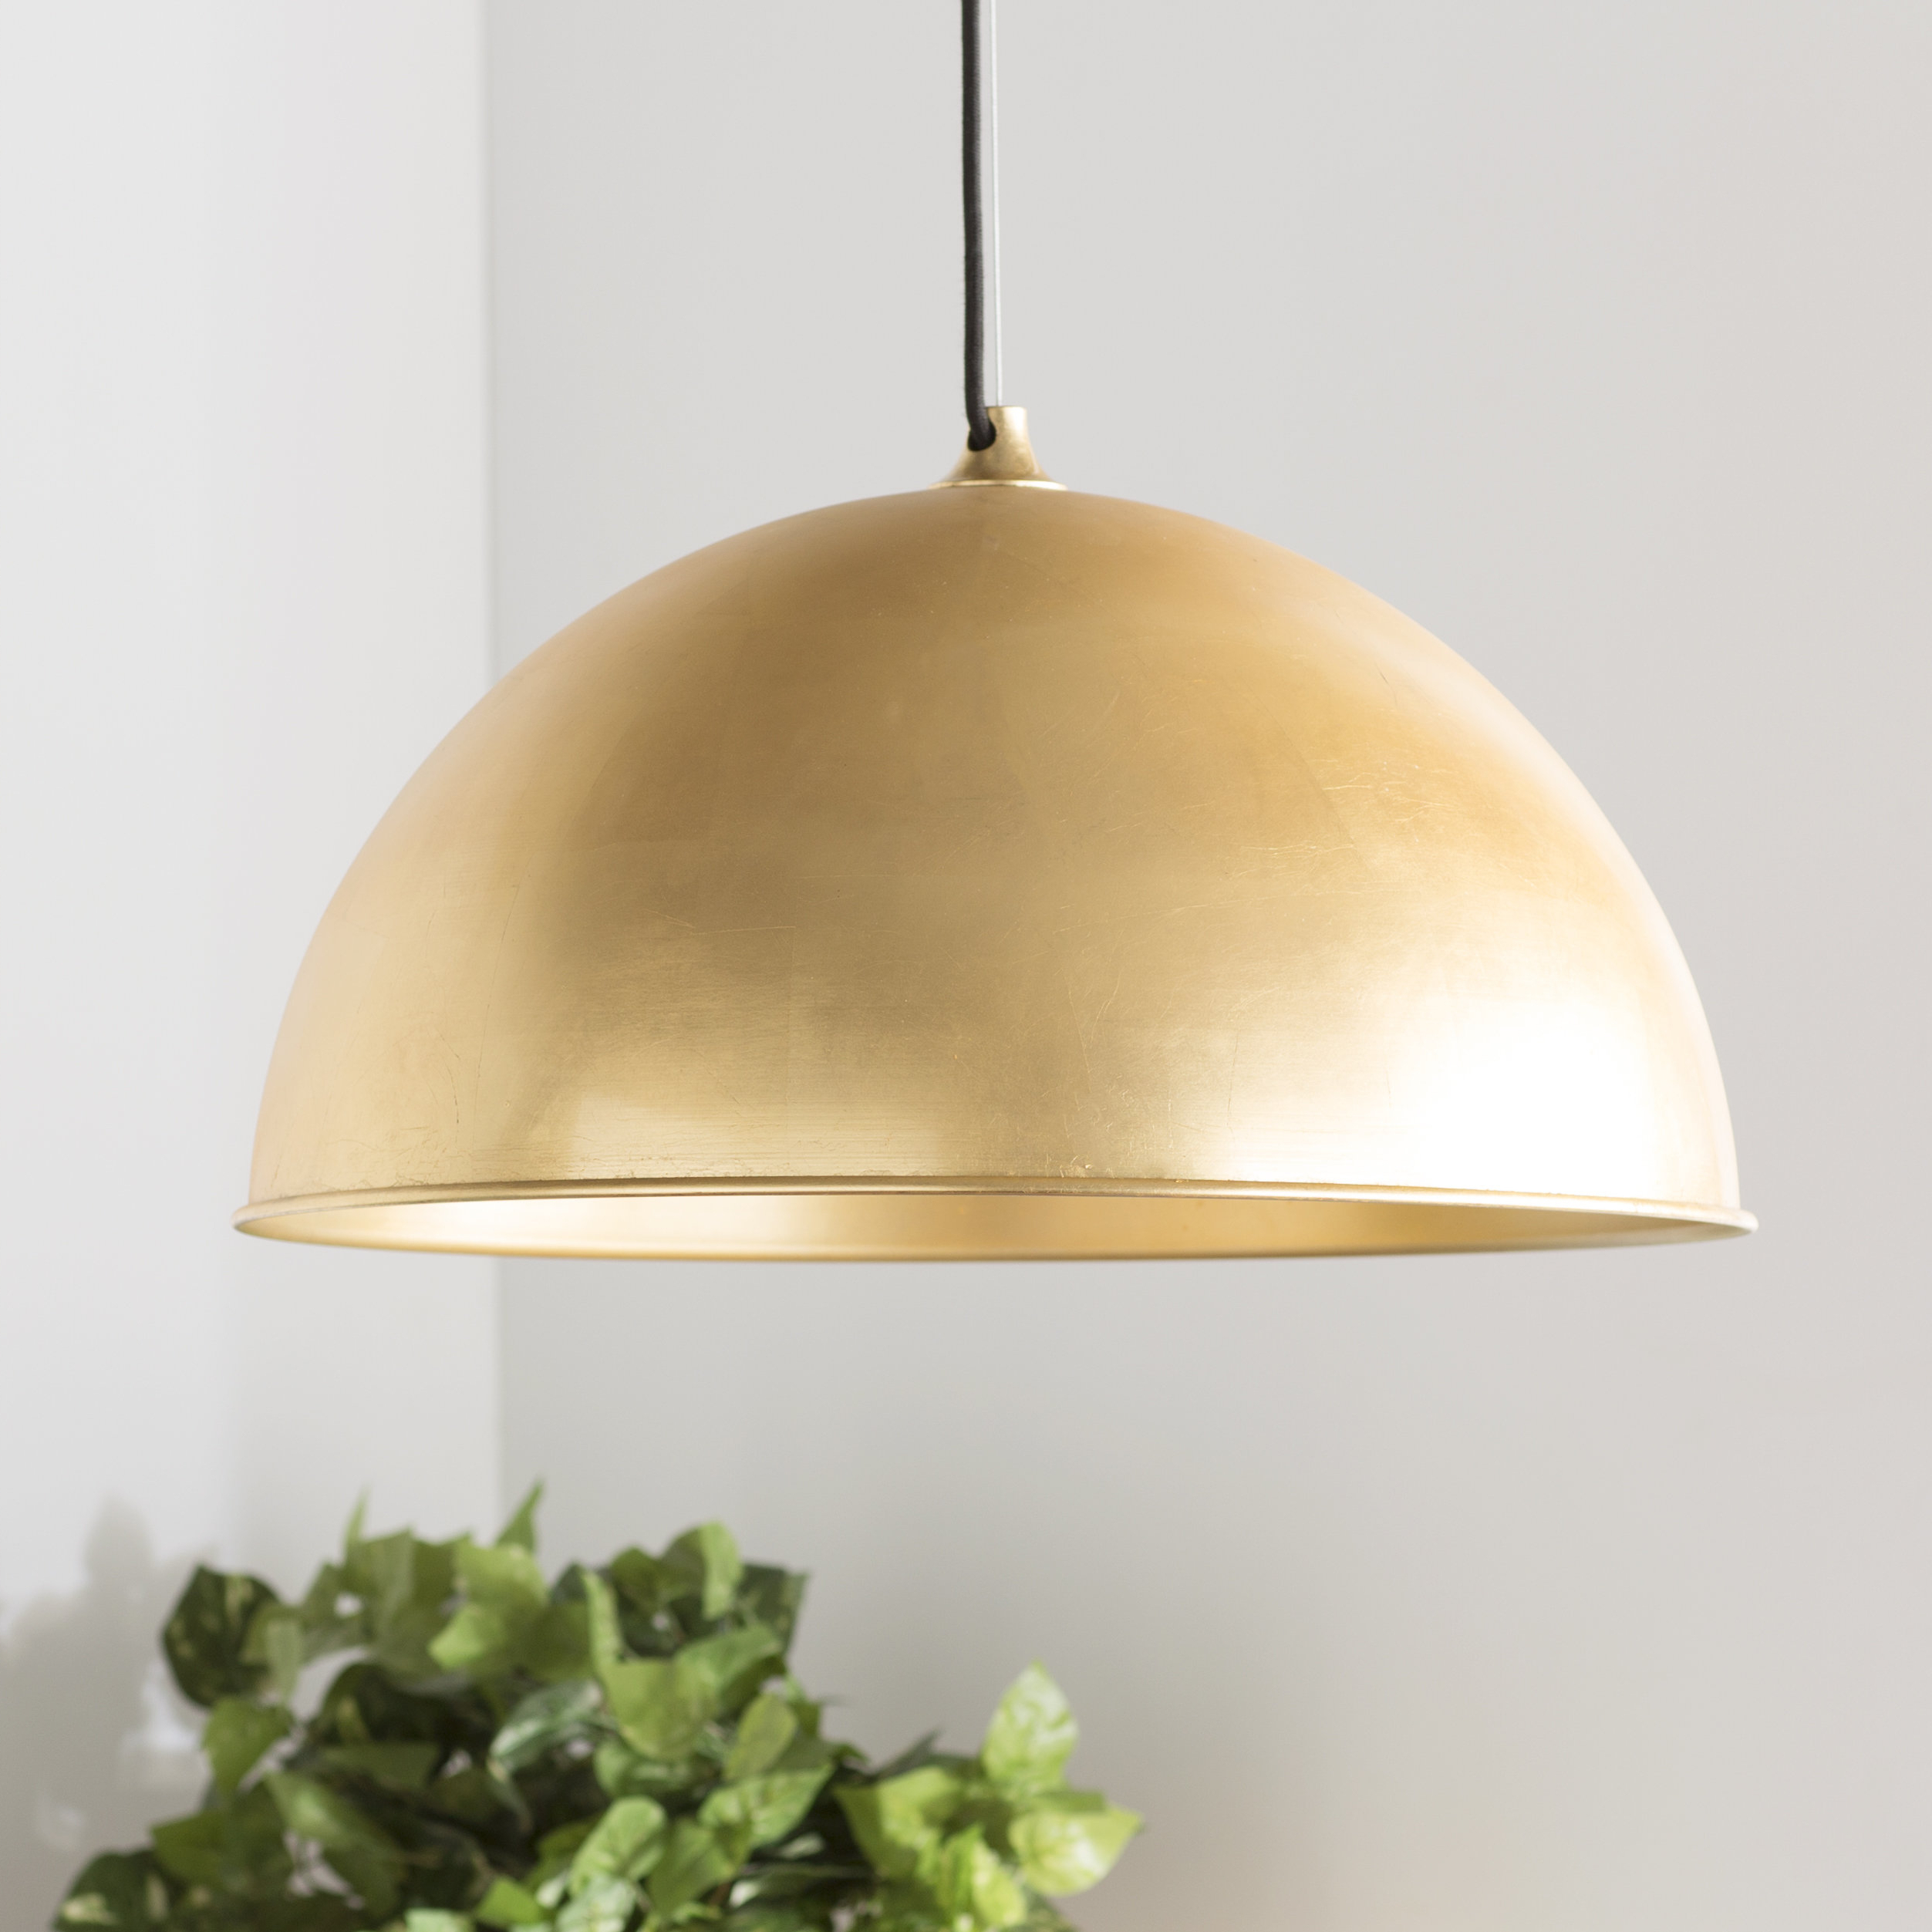 Most Recently Released Maconay 1 Light Single Dome Pendant Inside Macon 1 Light Single Dome Pendants (View 14 of 20)